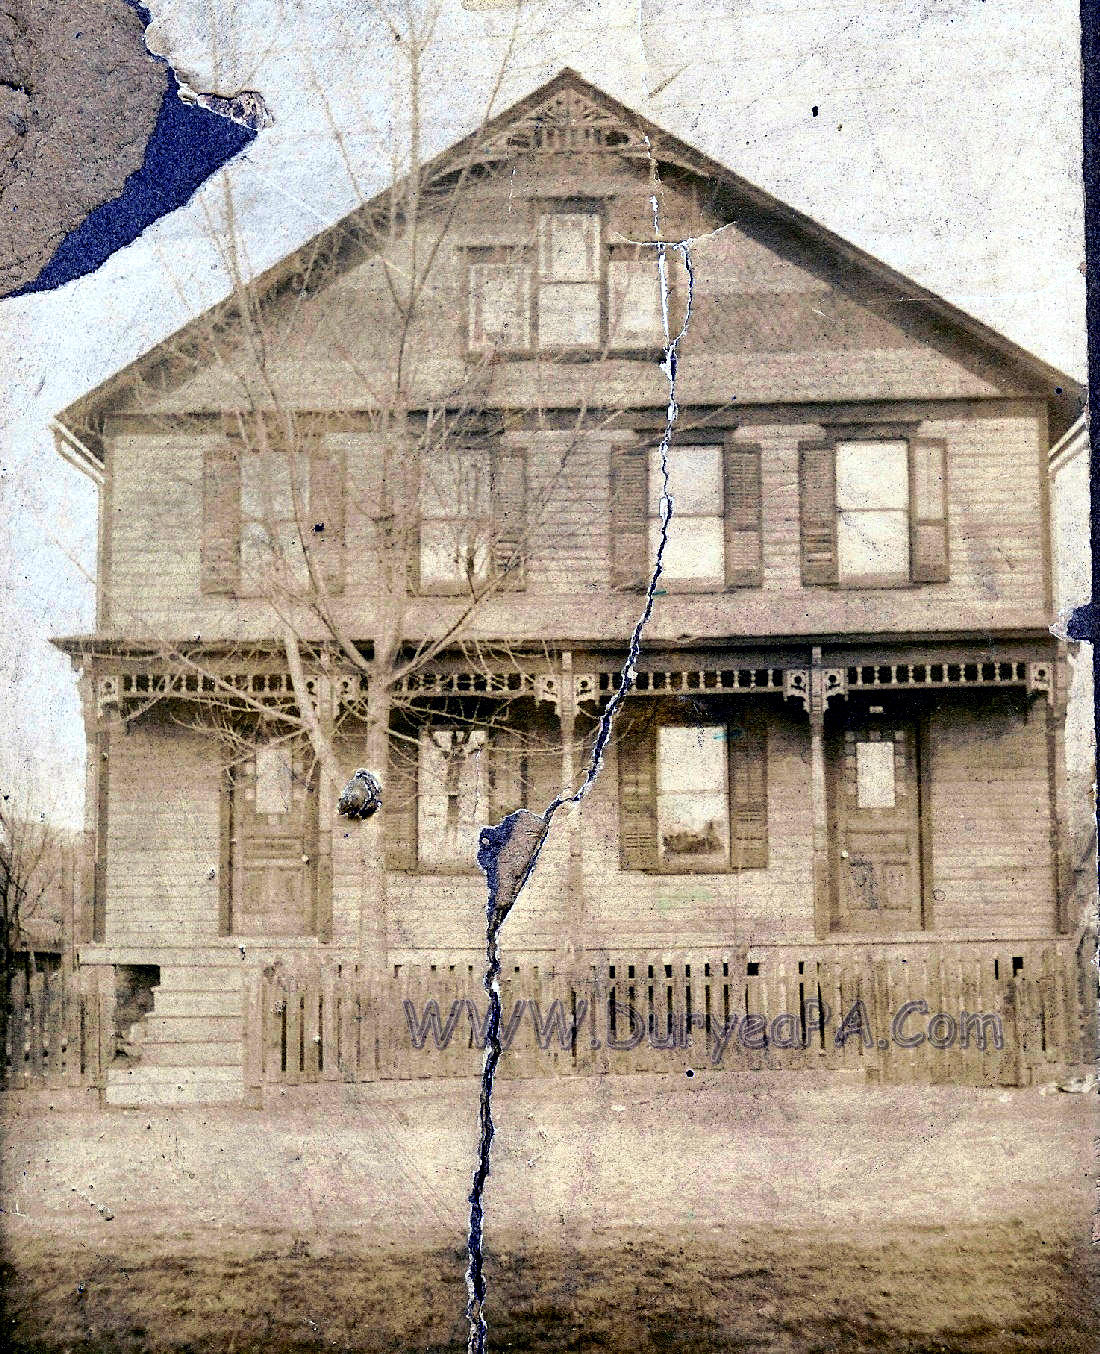 Pa Duryea Pesotine House Foote And Hallstead Streets on House Family 1900